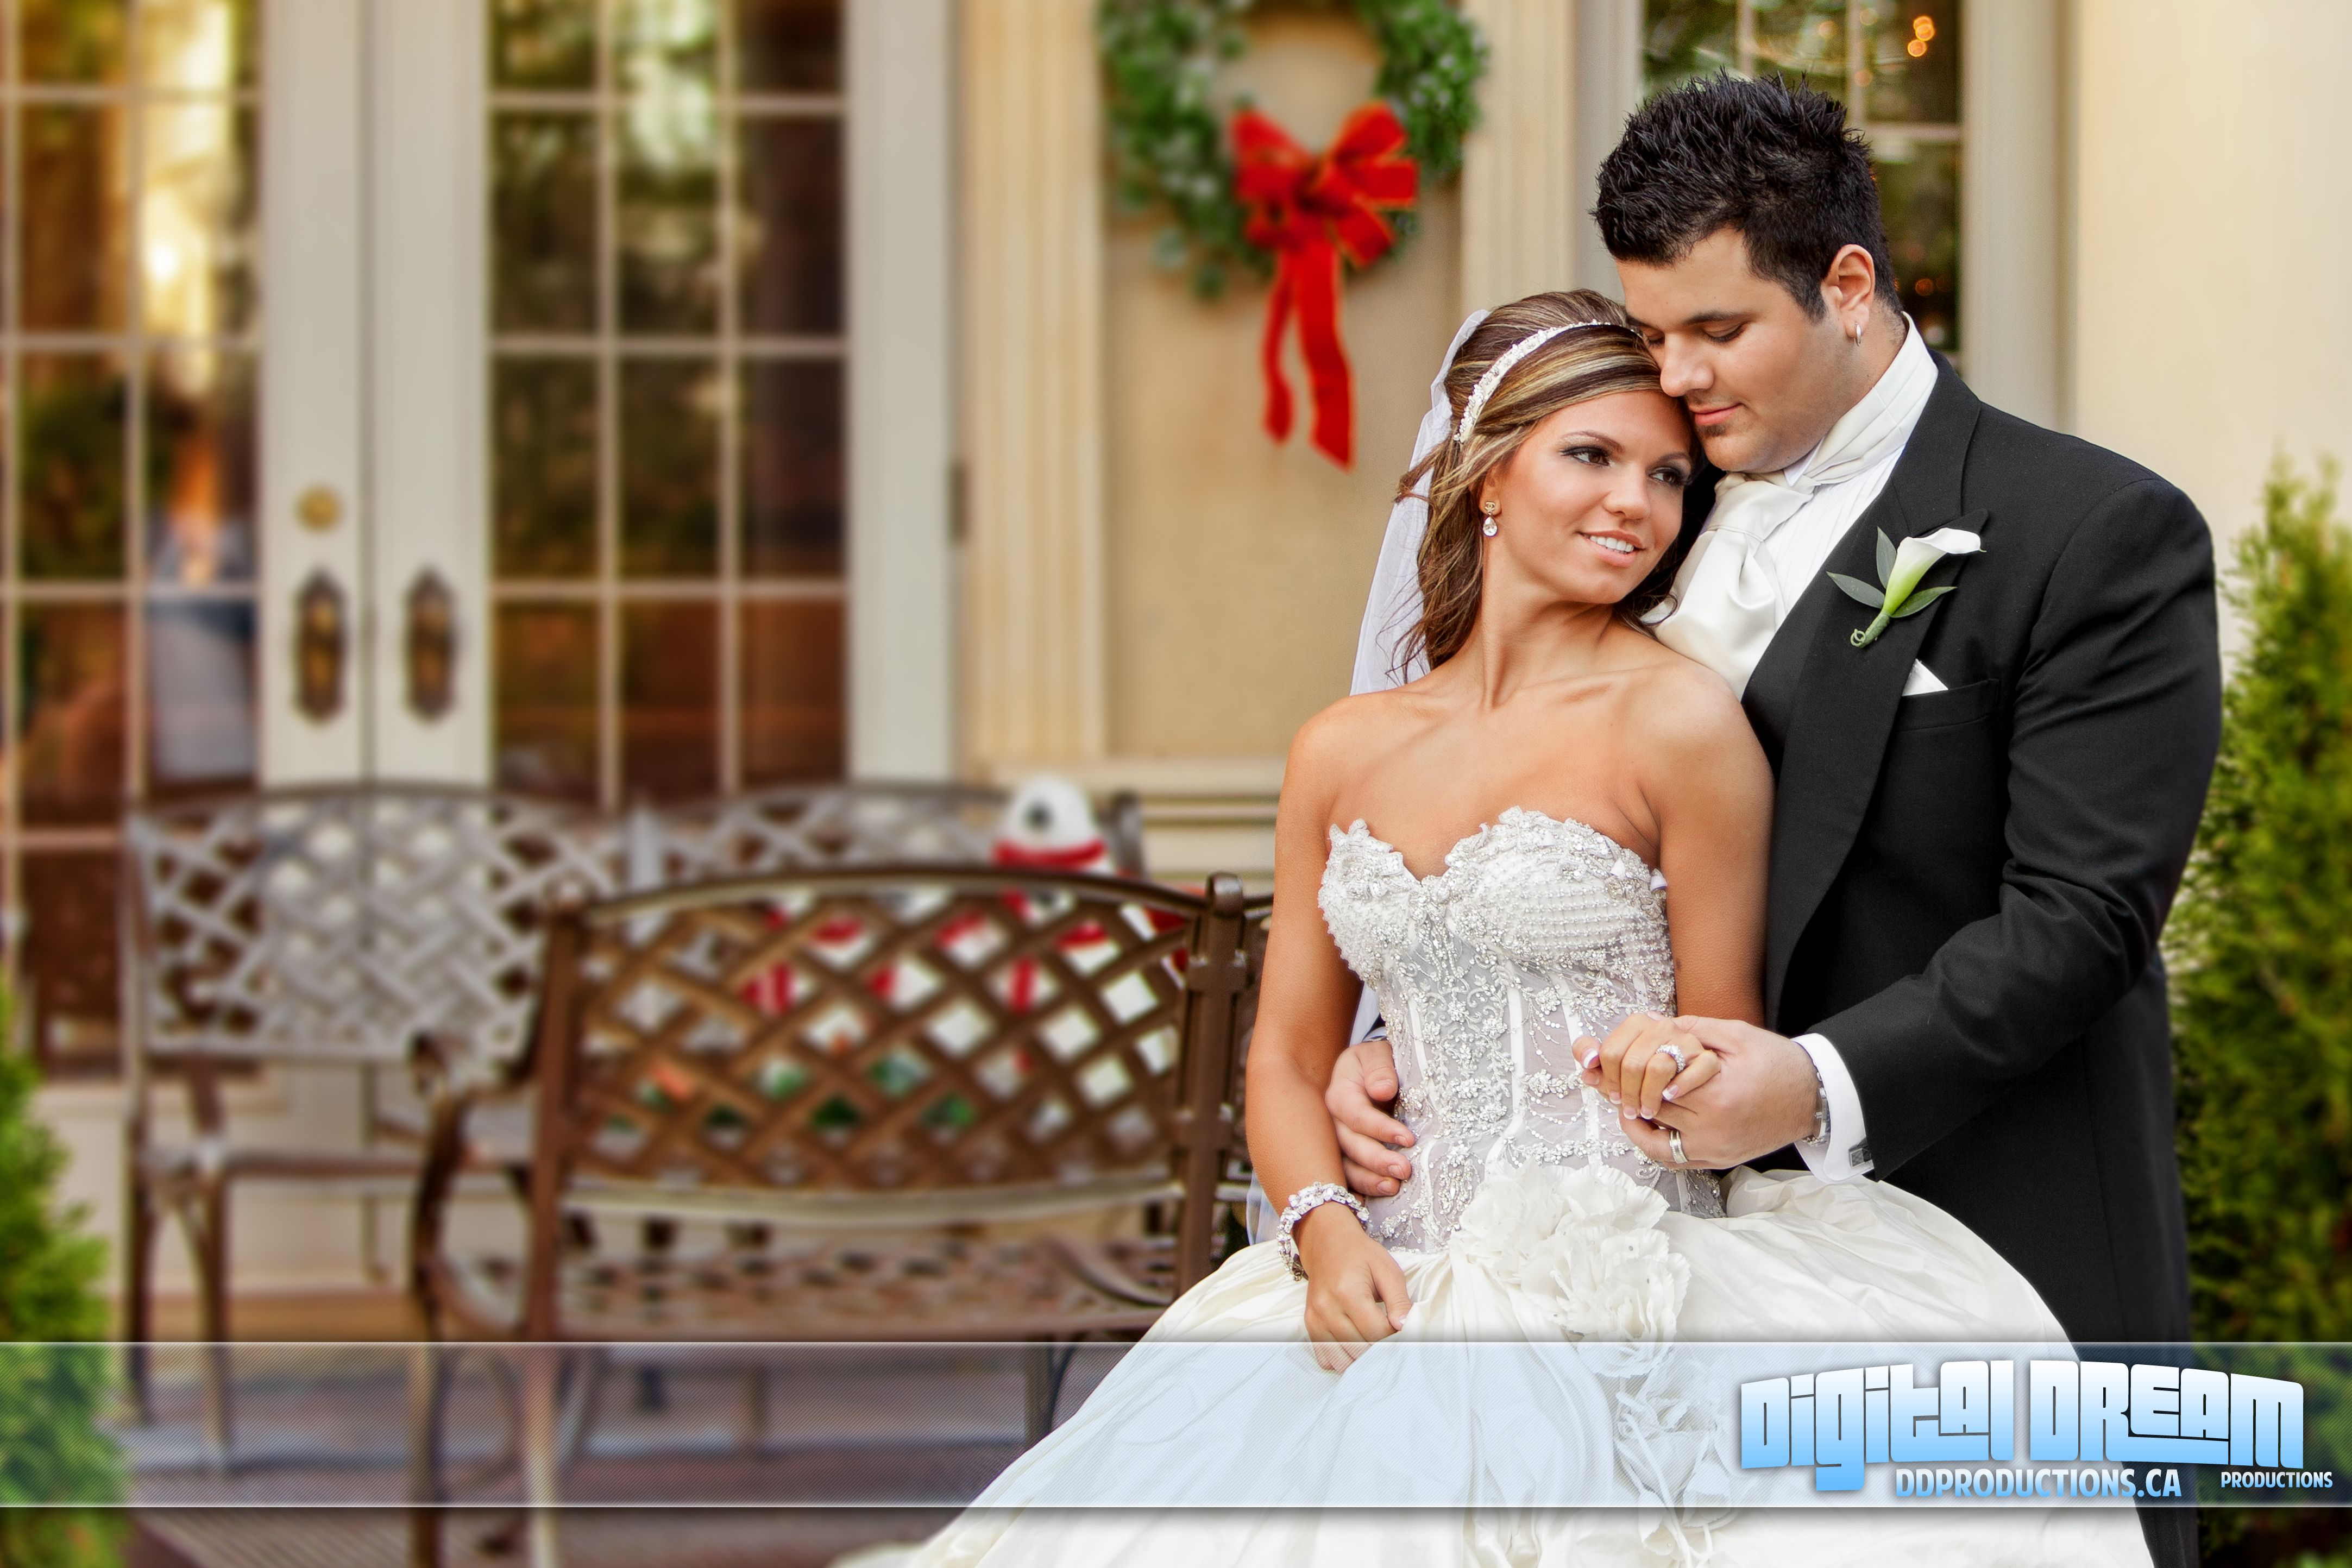 So romantic ! To view more of our photos please visit our